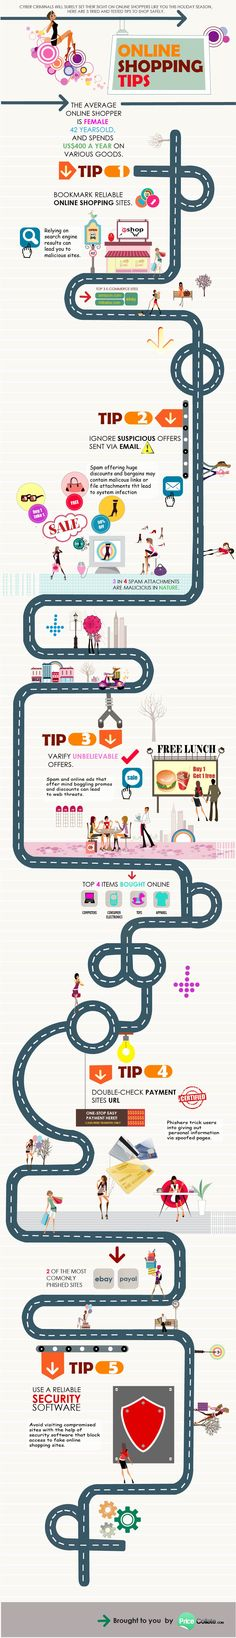 Online shopping tips #infographic (repinned by @ricardollera)